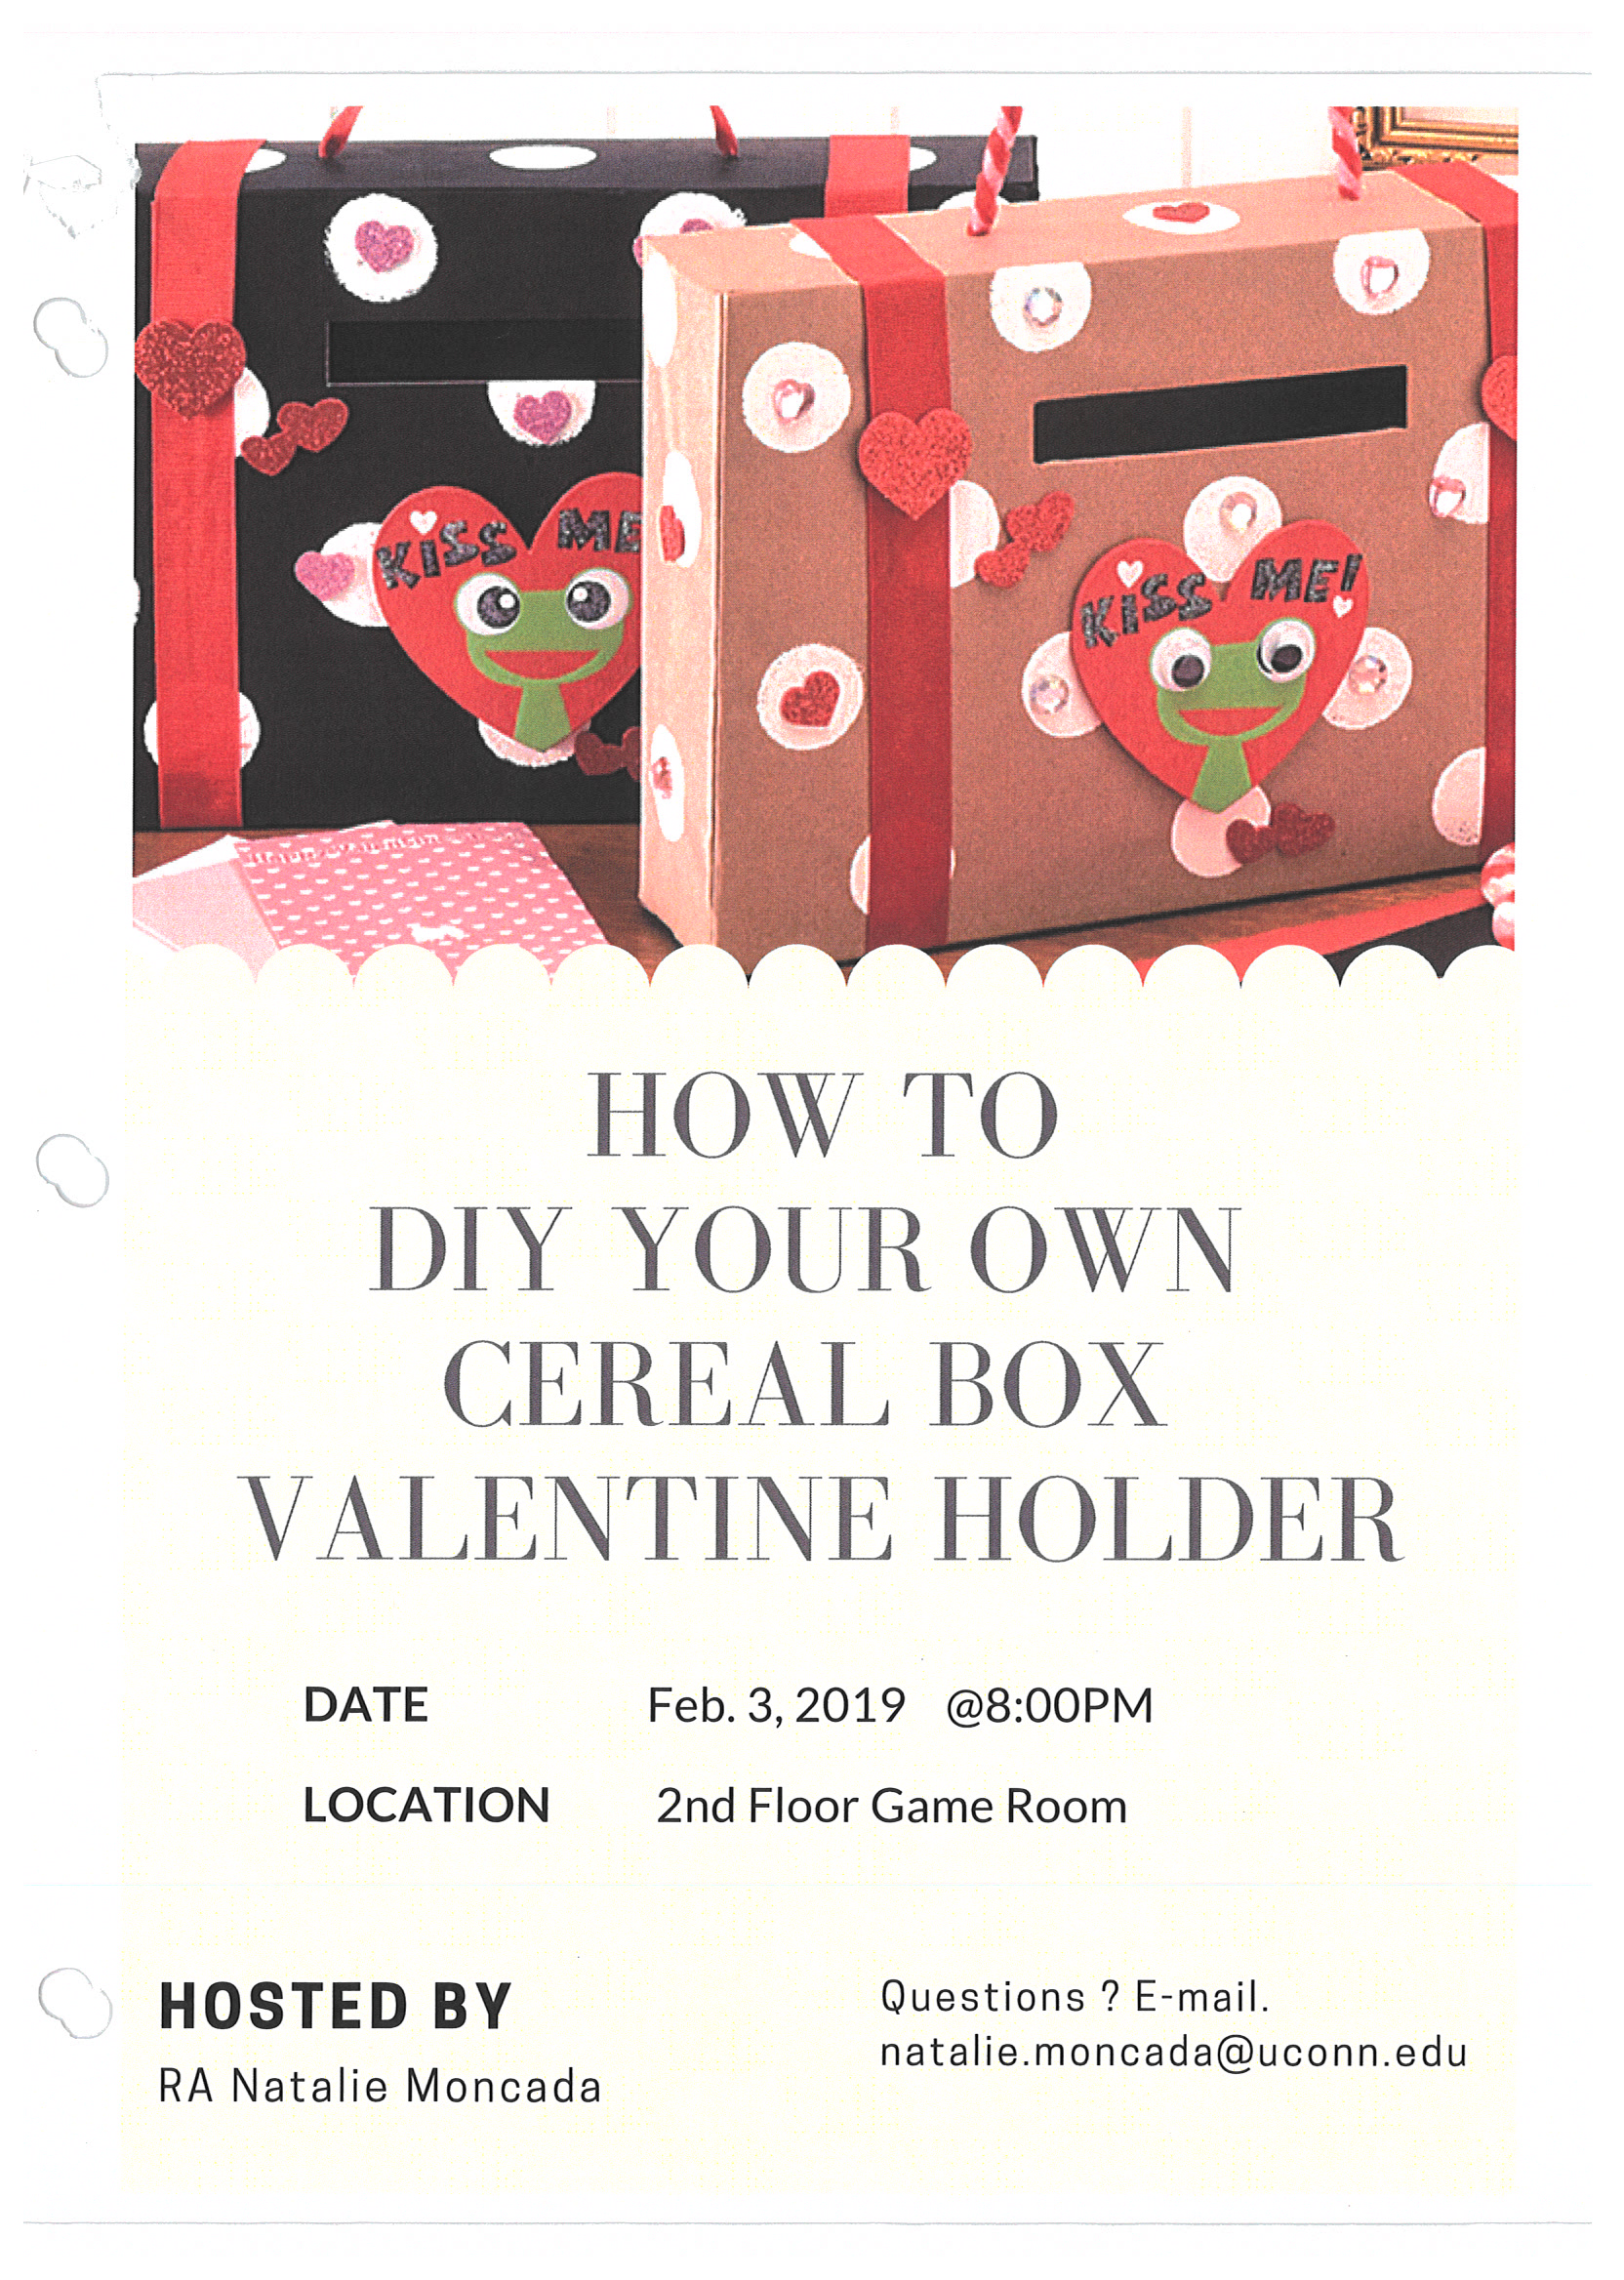 Stamford programming flyer example: Cereal Box Valentine Holder